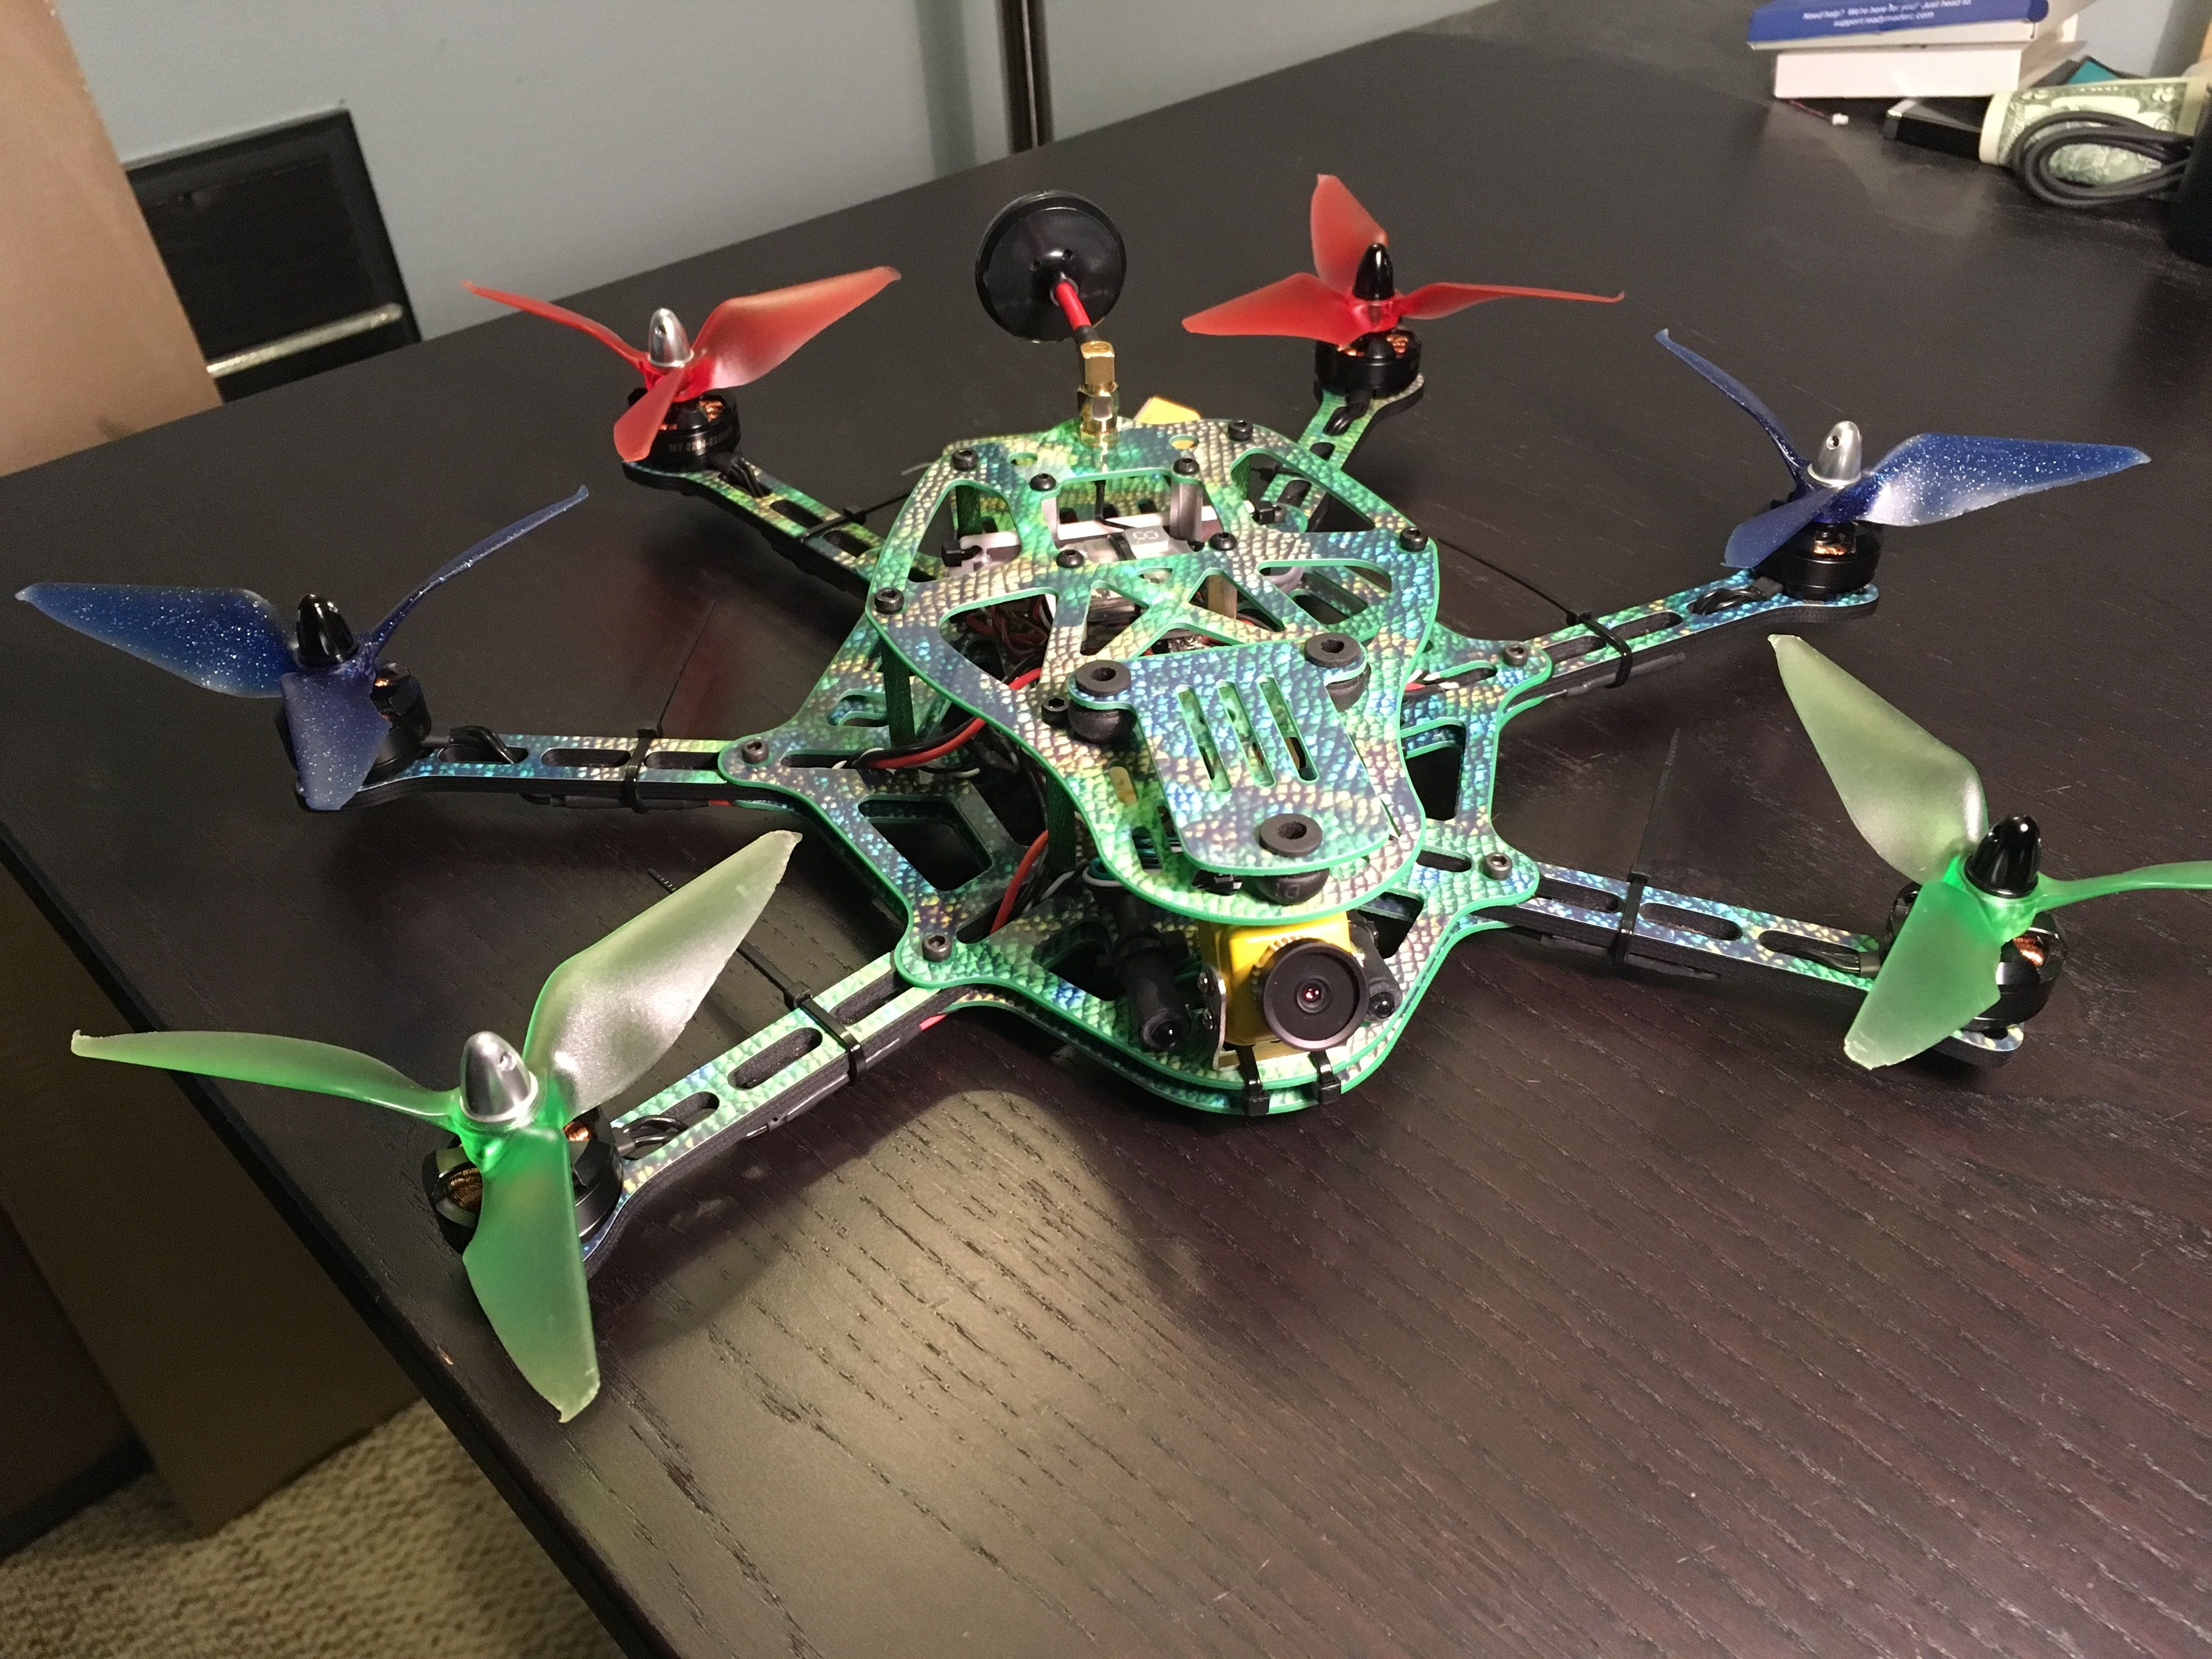 The Heli Monster - Thorax Hex